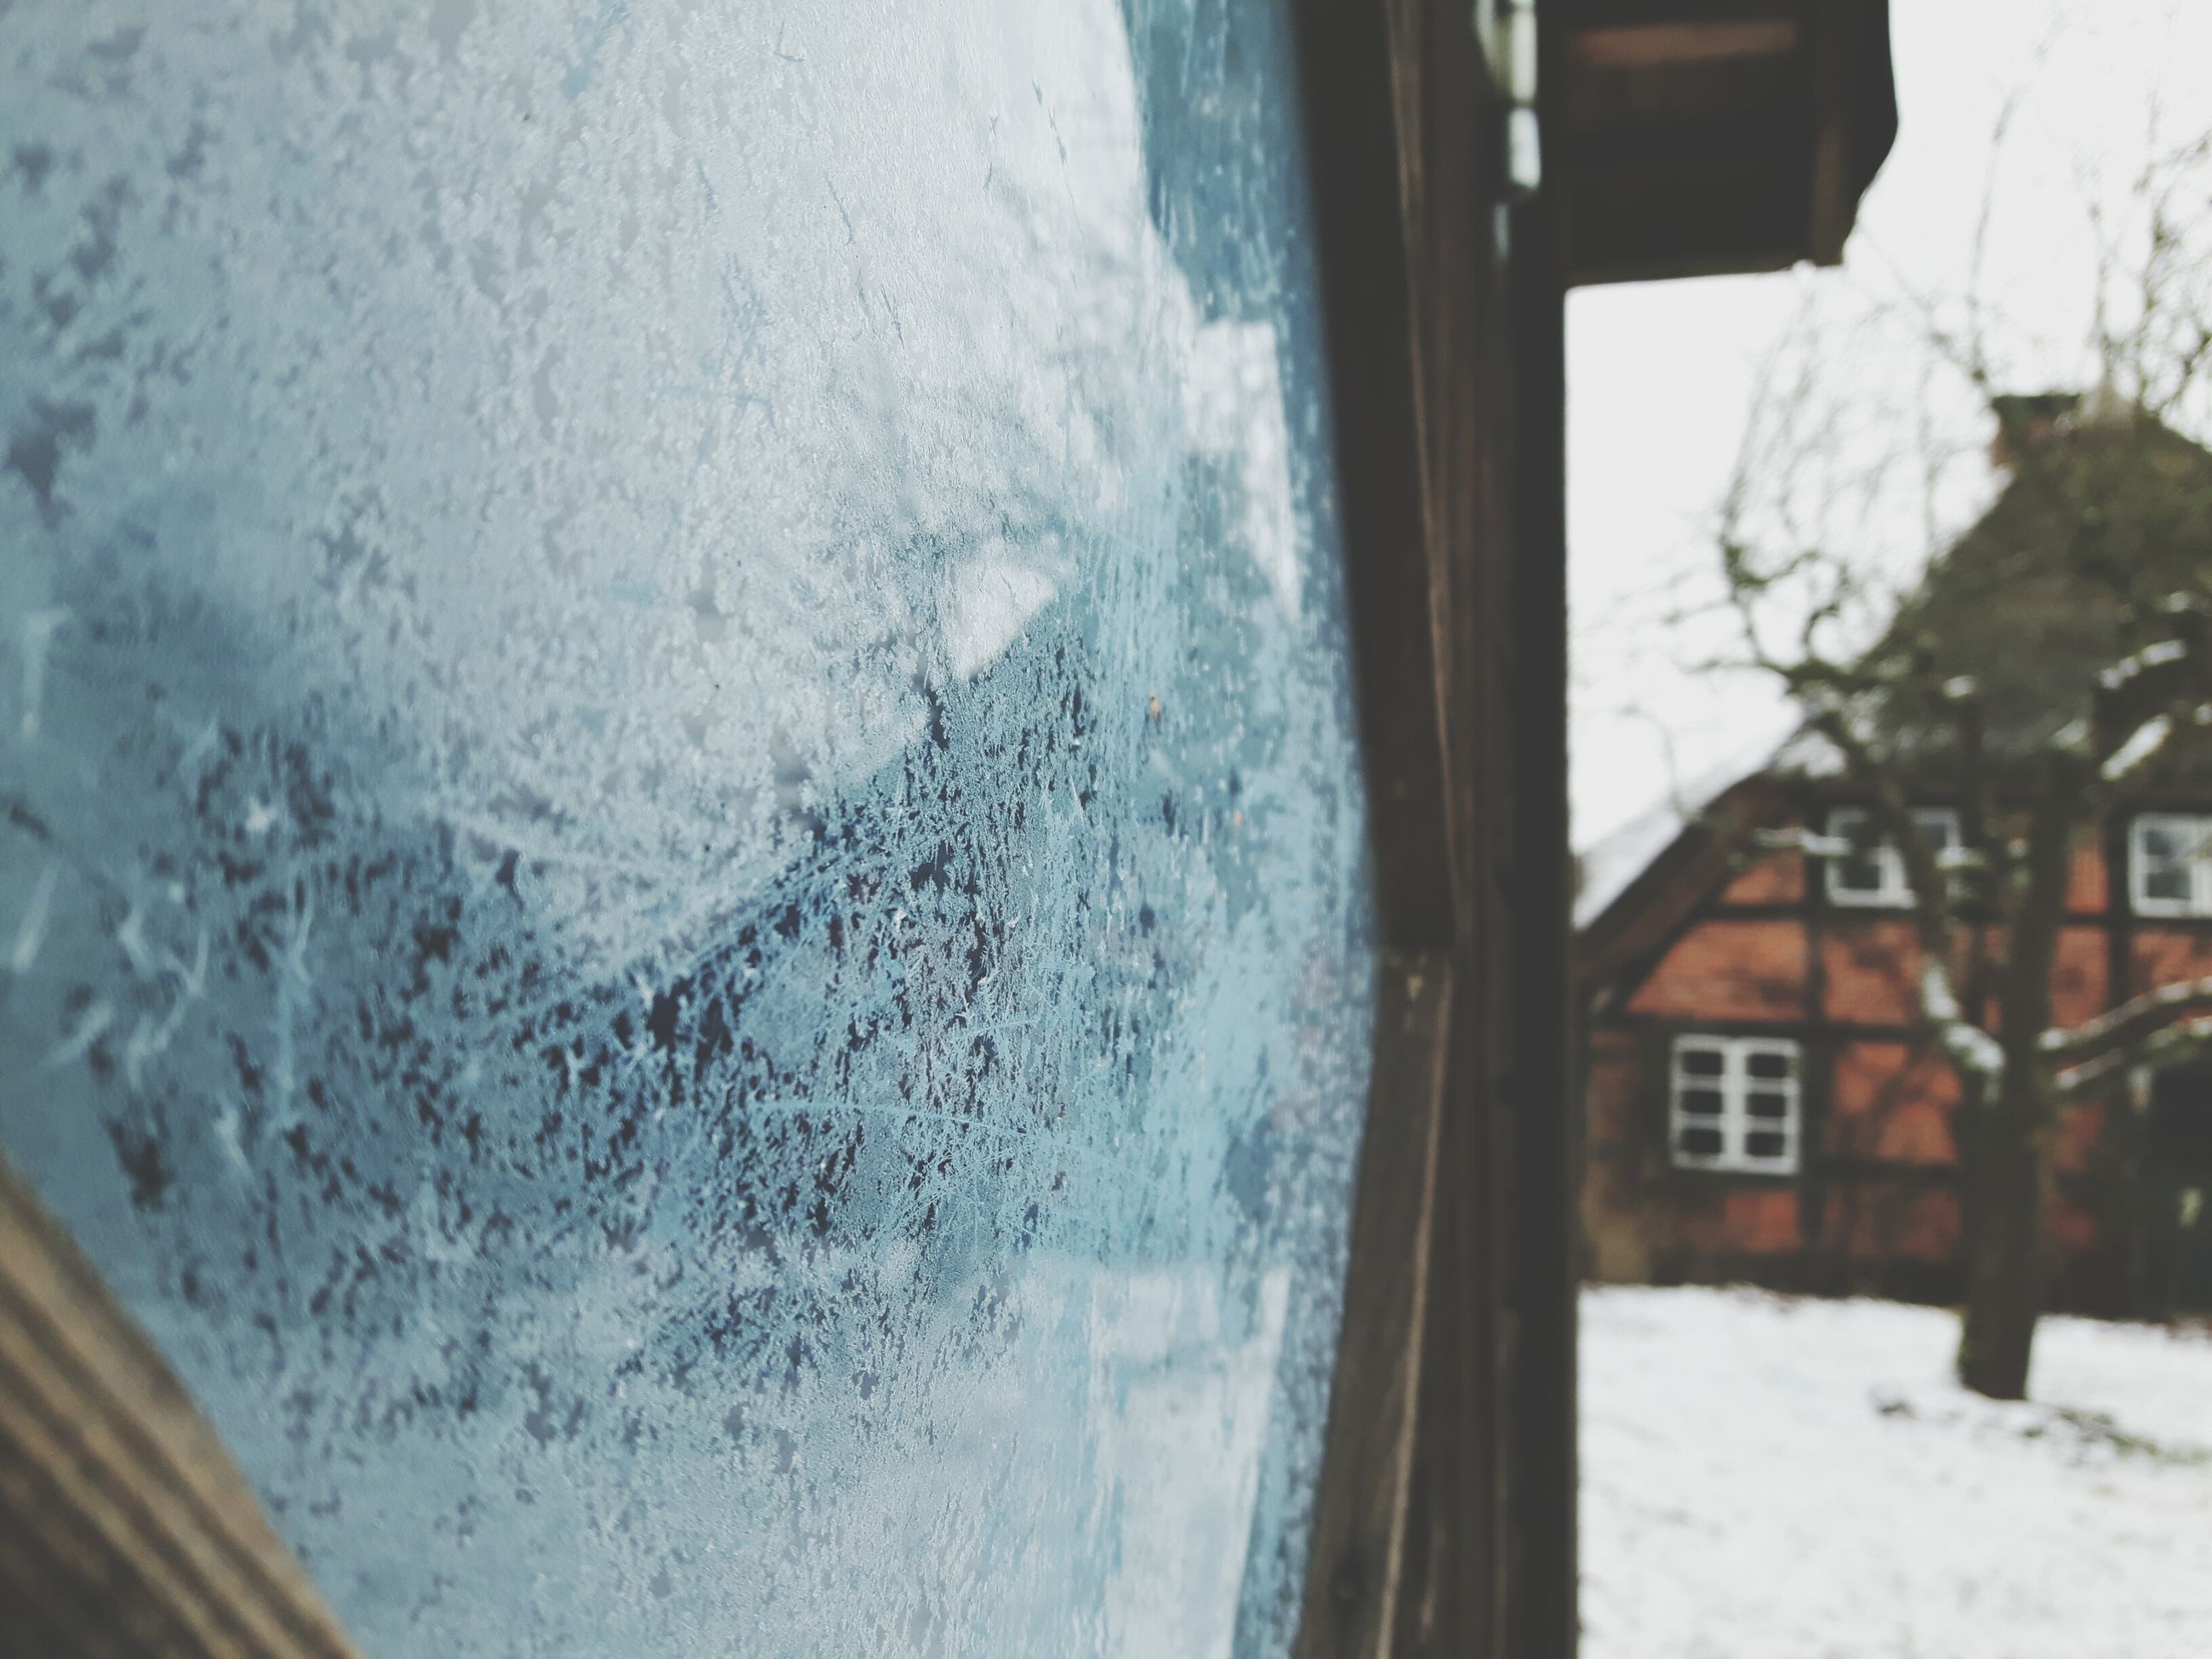 cold temperature, winter, snow, season, window, glass - material, weather, water, transparent, frozen, building exterior, built structure, close-up, architecture, reflection, drop, wet, day, ice, focus on foreground